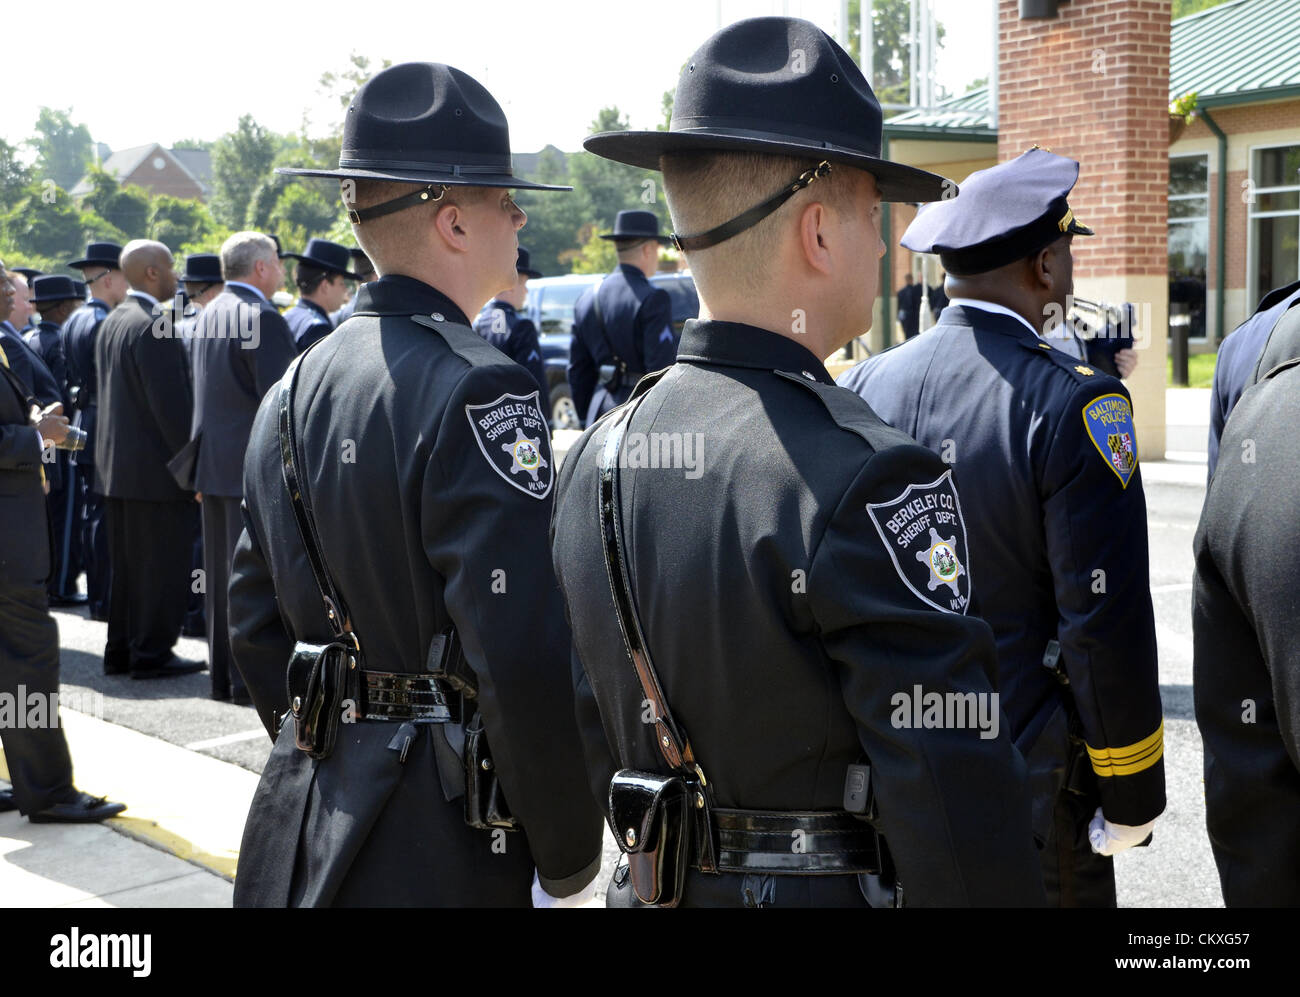 Mitchellville, Maryland, USA. August 28th 2012. Funeral for fallen Prince George's County police officer Adrian - Stock Image